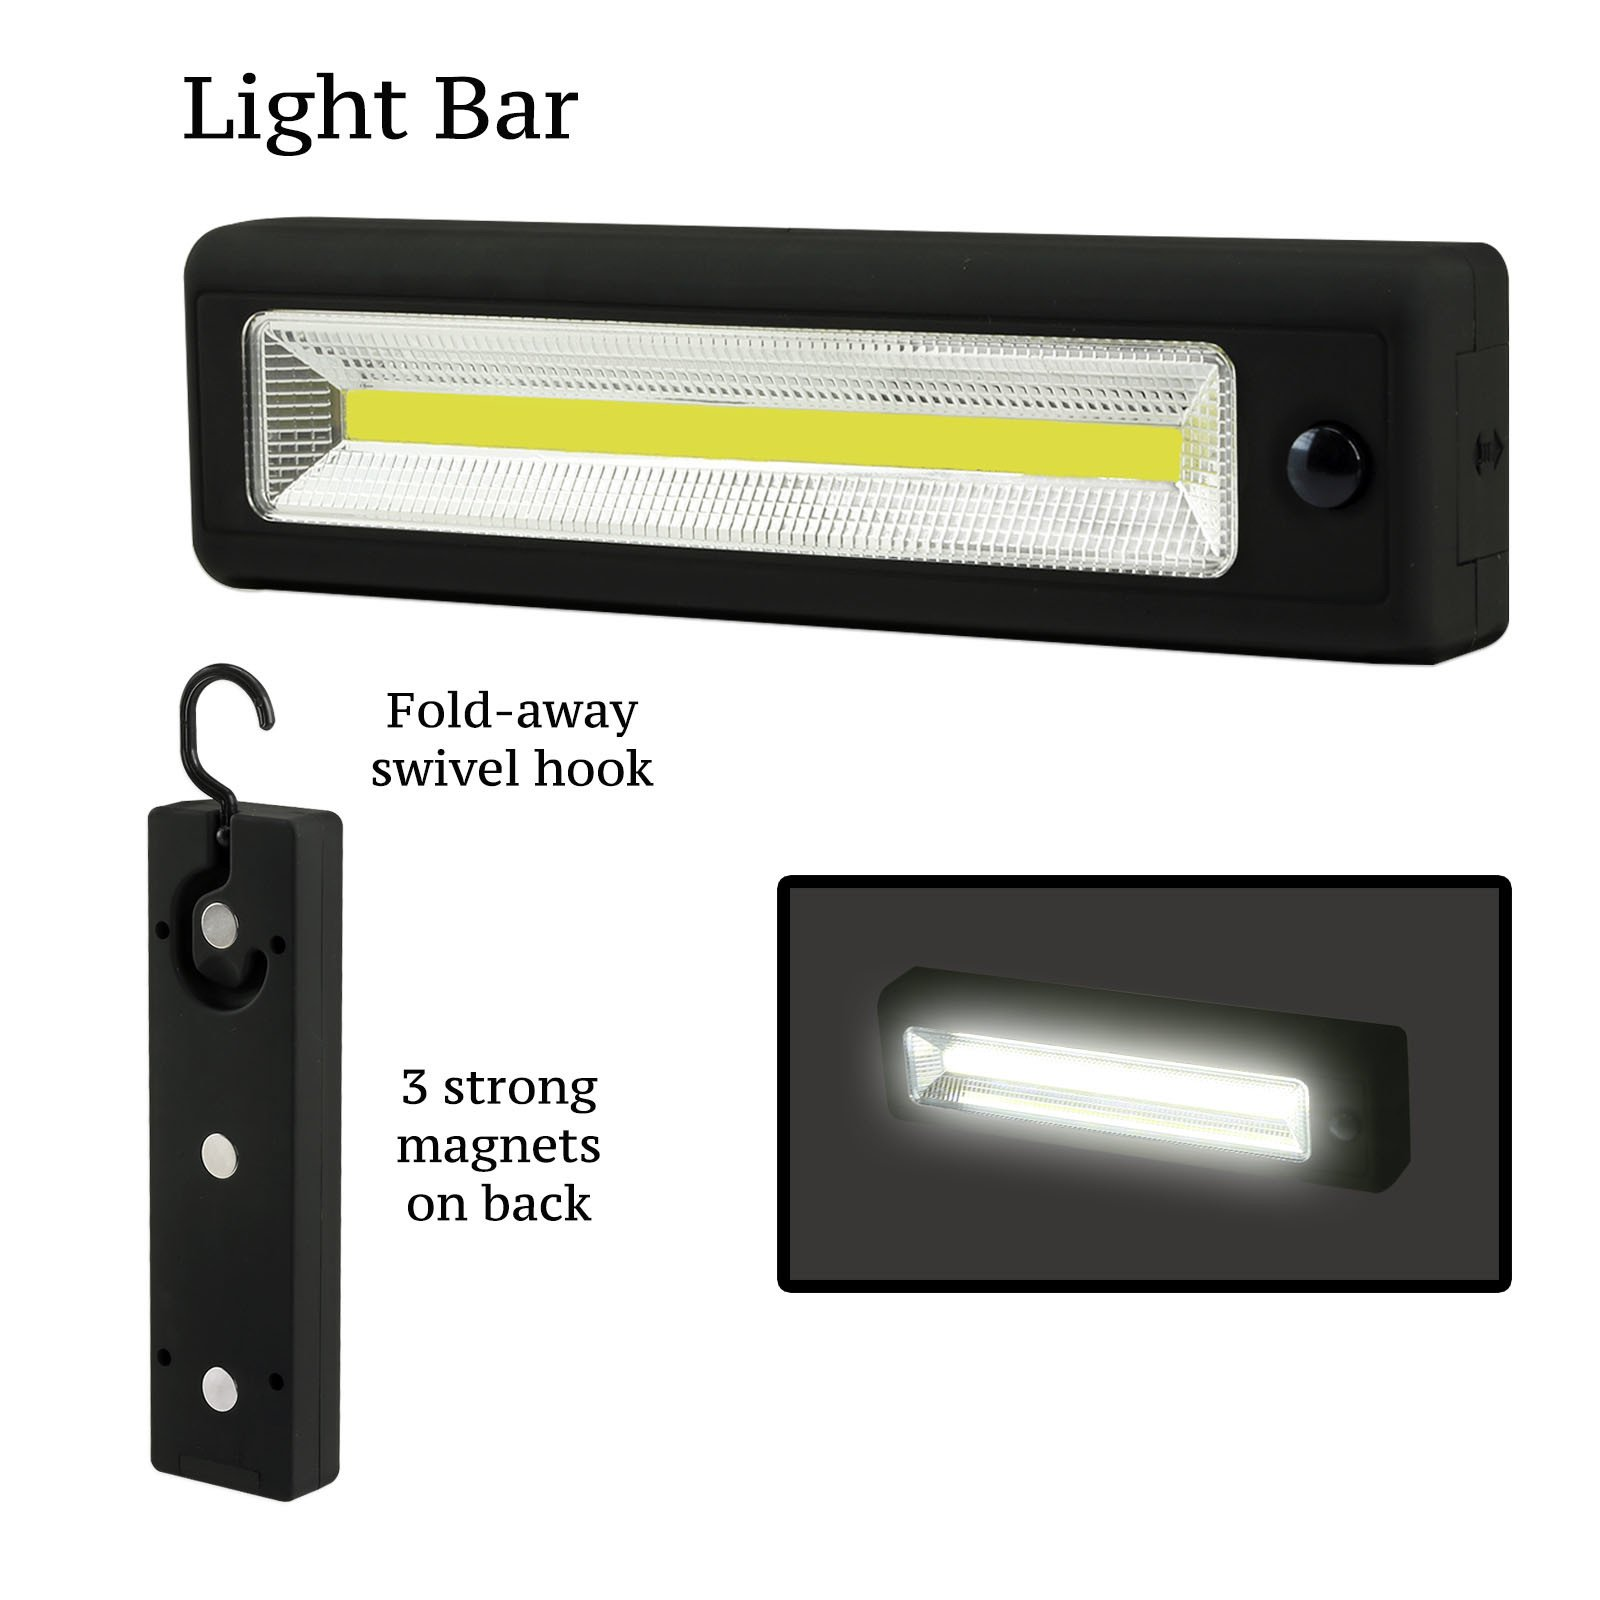 Ultra-Bright COB LED Worklights - Choose Pocket, Flex or Light Bar - Magnetic Base - Superior Light Broadcast